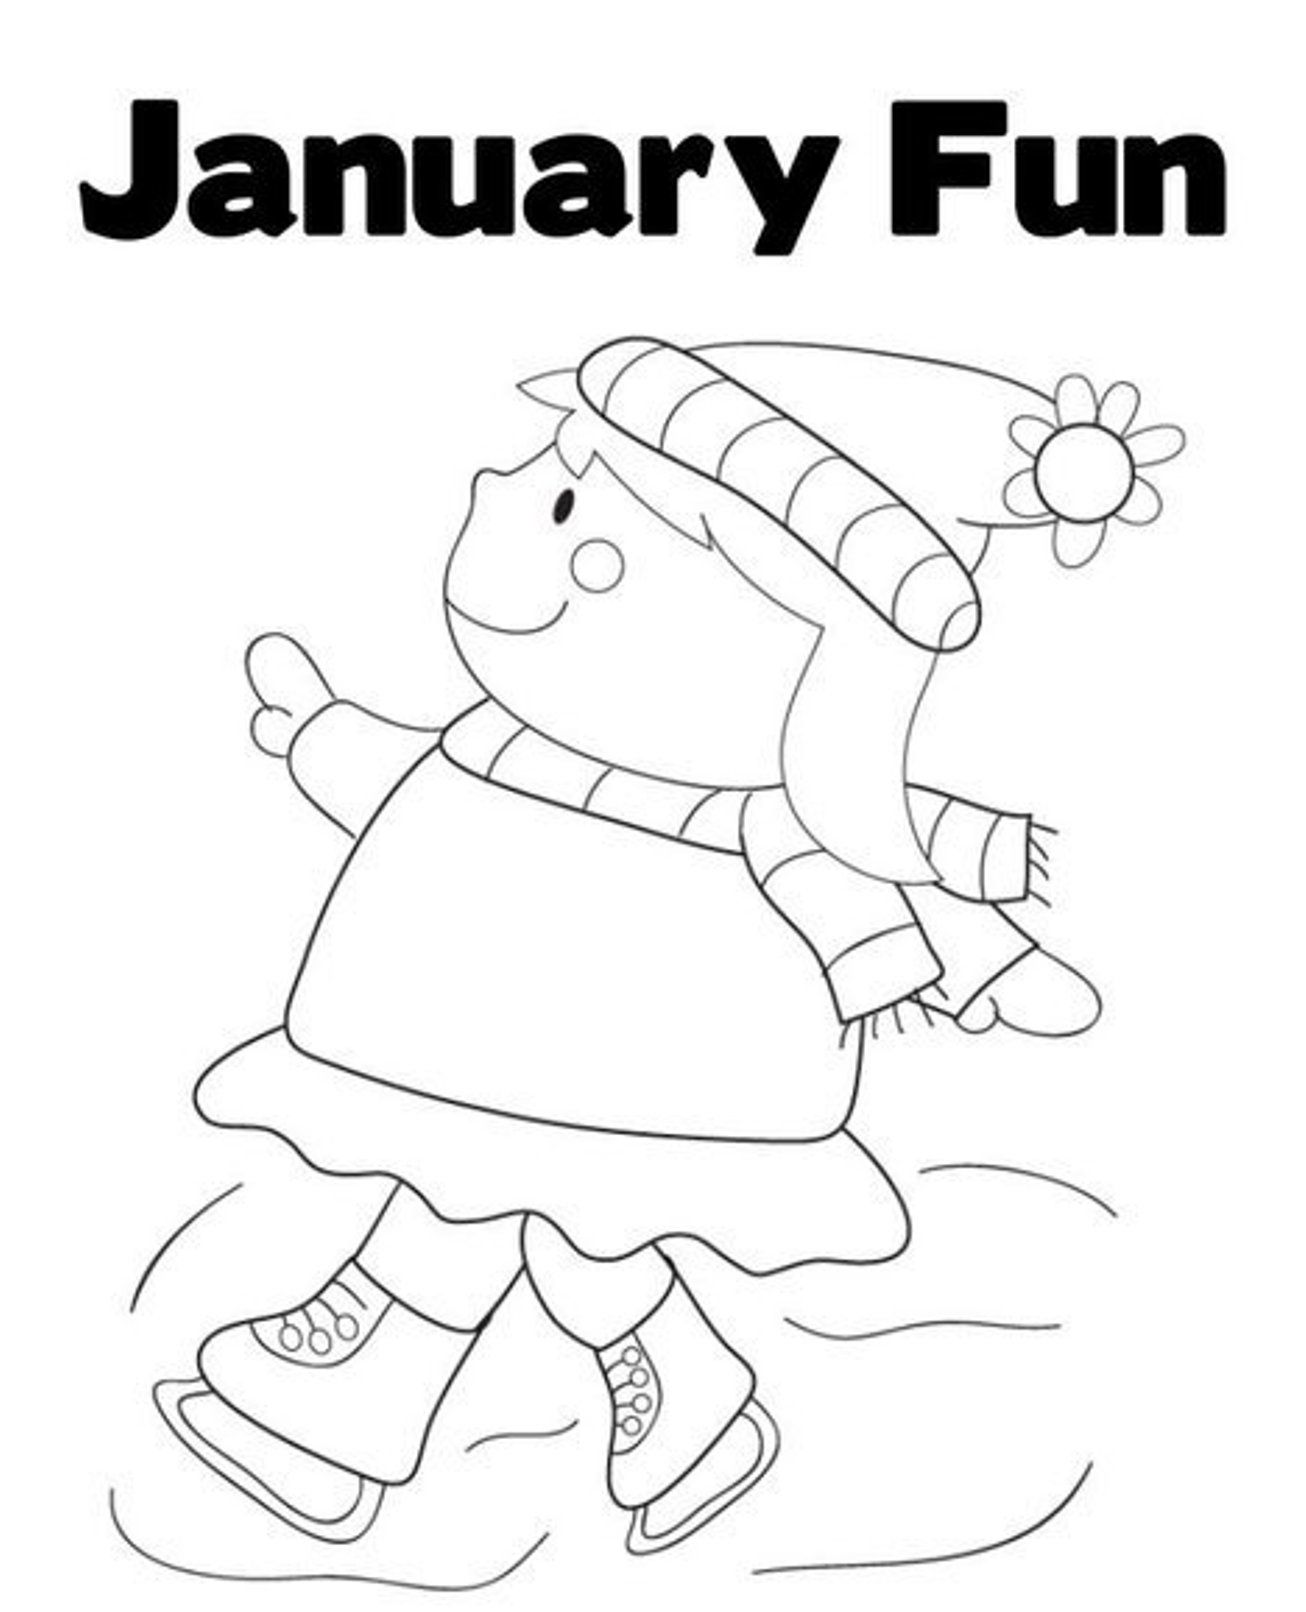 Coloring Pages January Color Pages winterjanuary coloring pages az january winter of